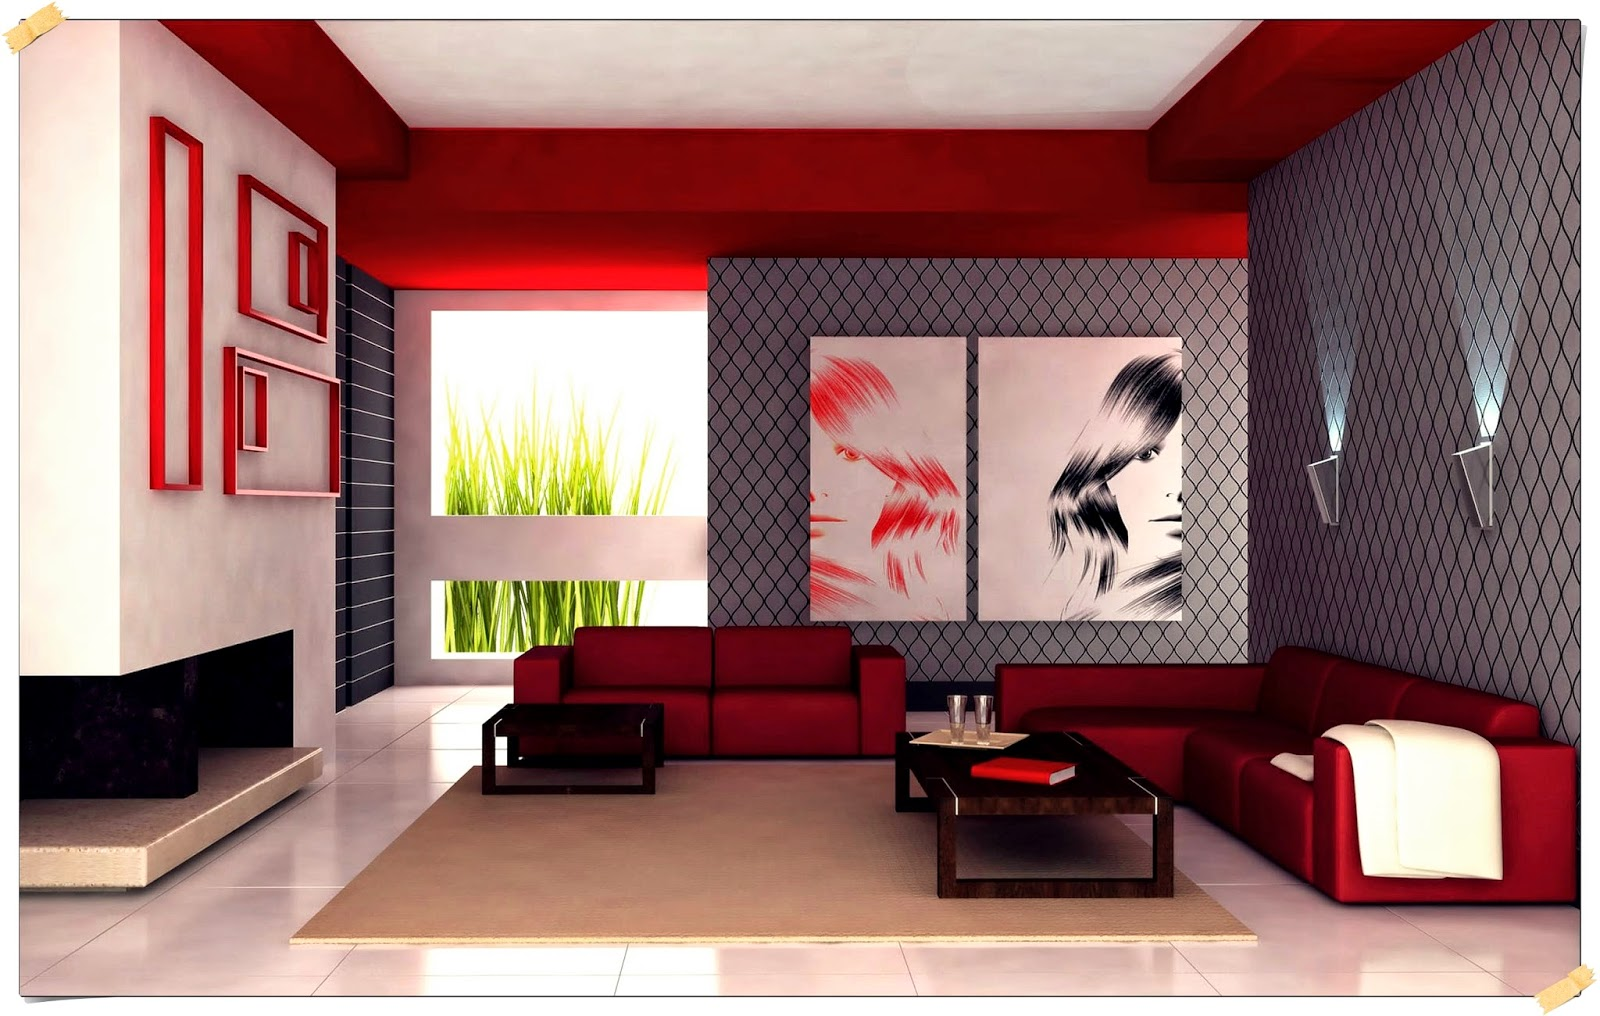 Home Decoration And Interior Design Ideas Small Living Room Design Ideas Taking Grey And Red Interior Scheme